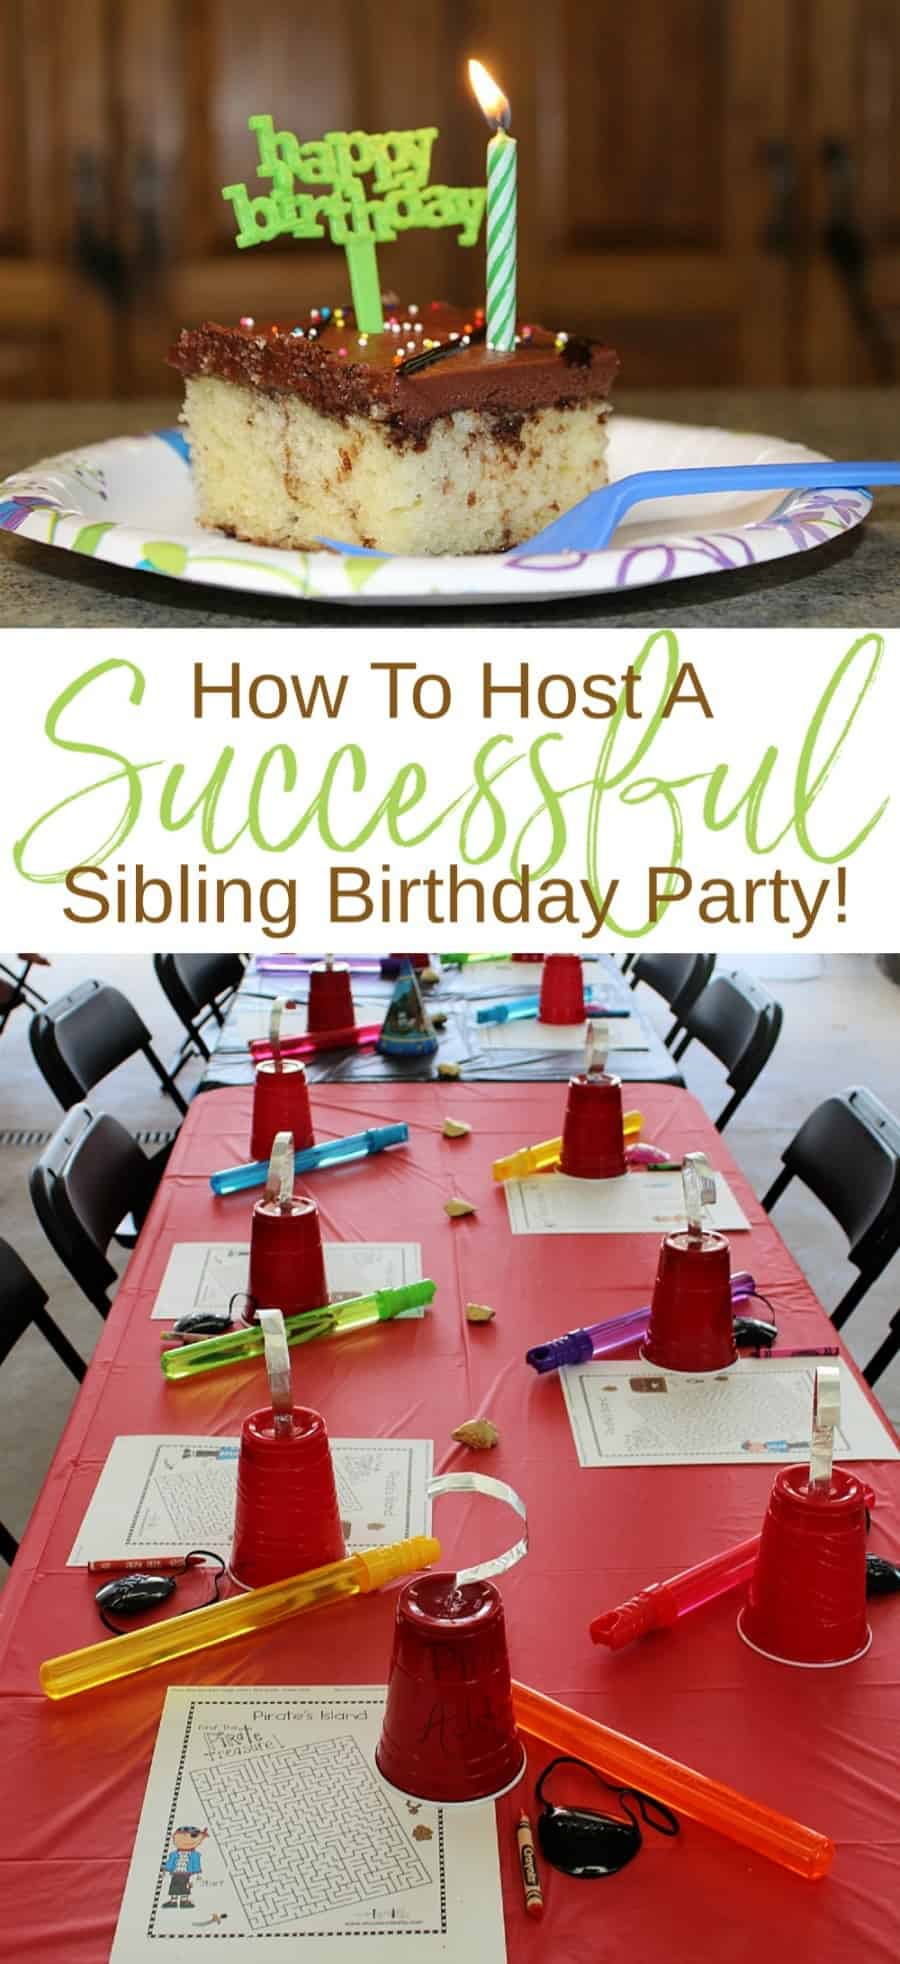 How To Host A Successful Sibling Birthday Party